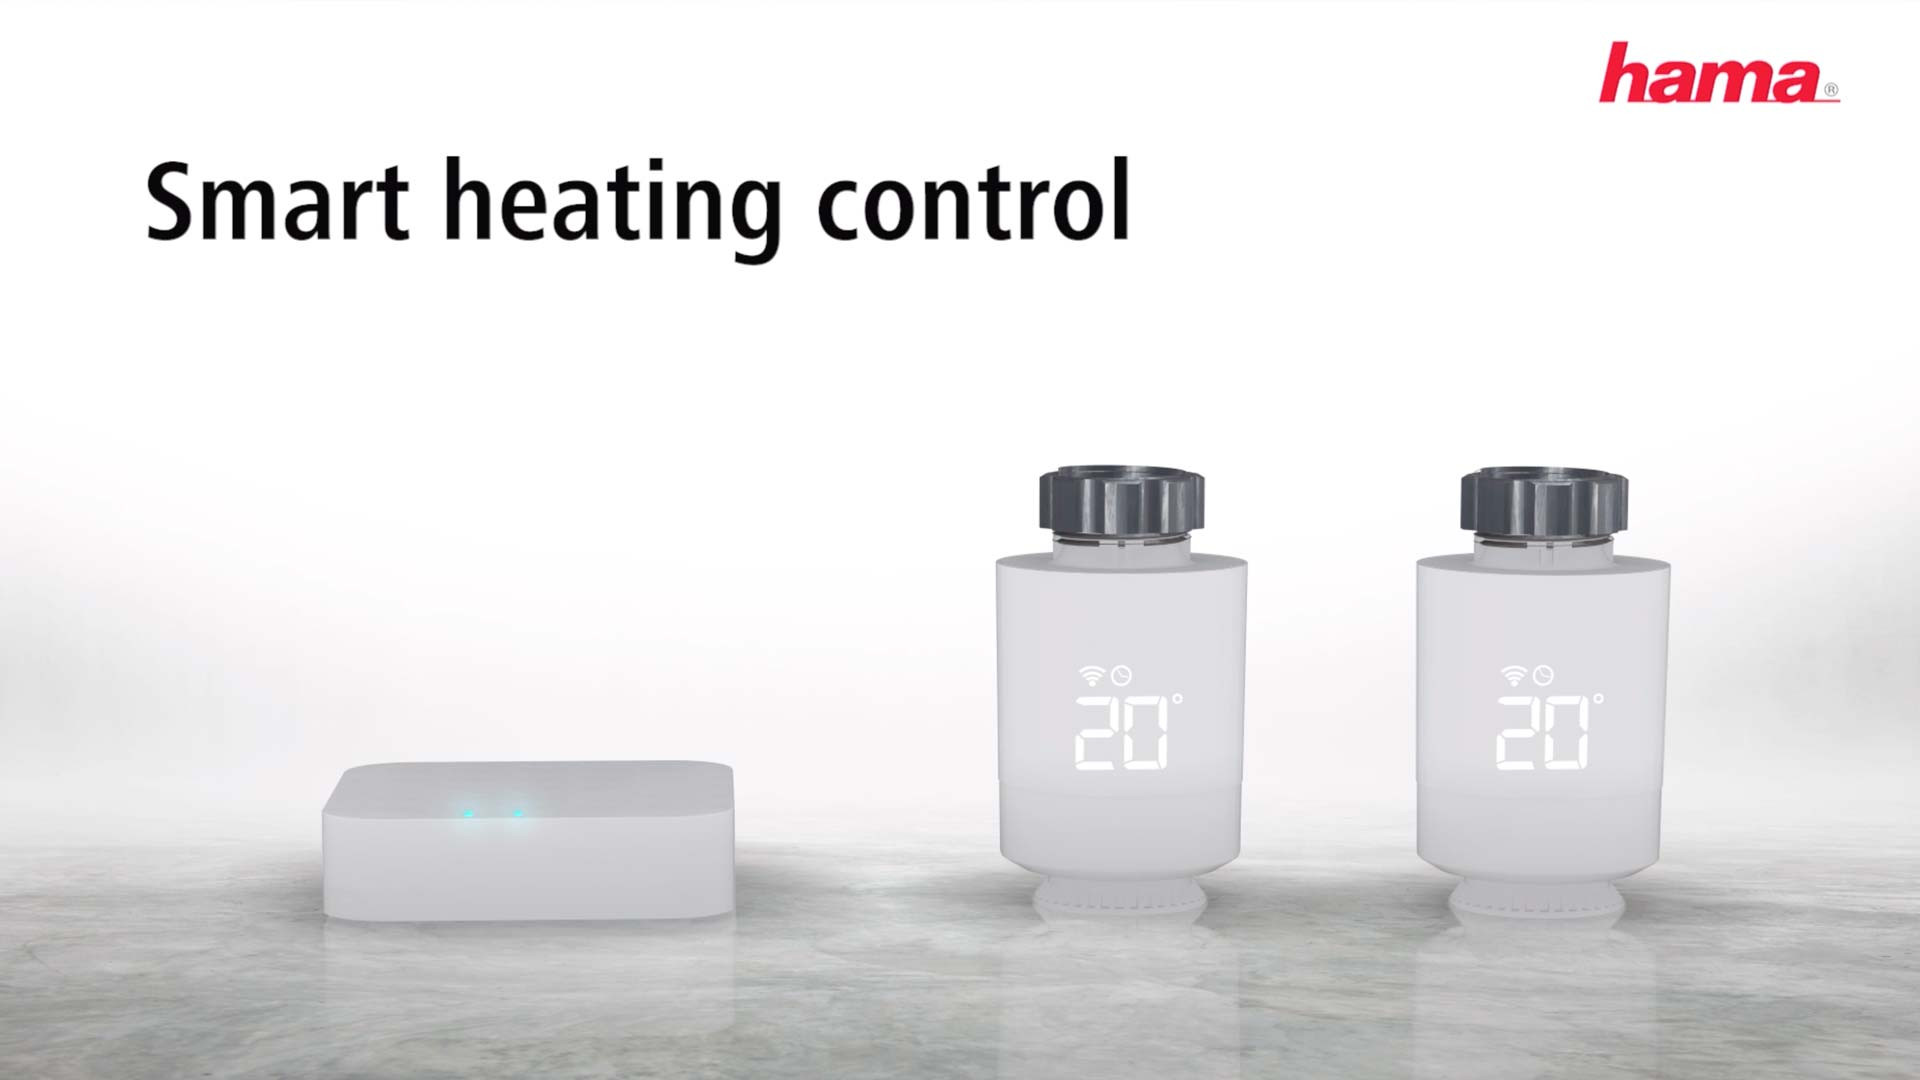 Hama WiFi Heating Control, Starter Kit with Hama Smart Base